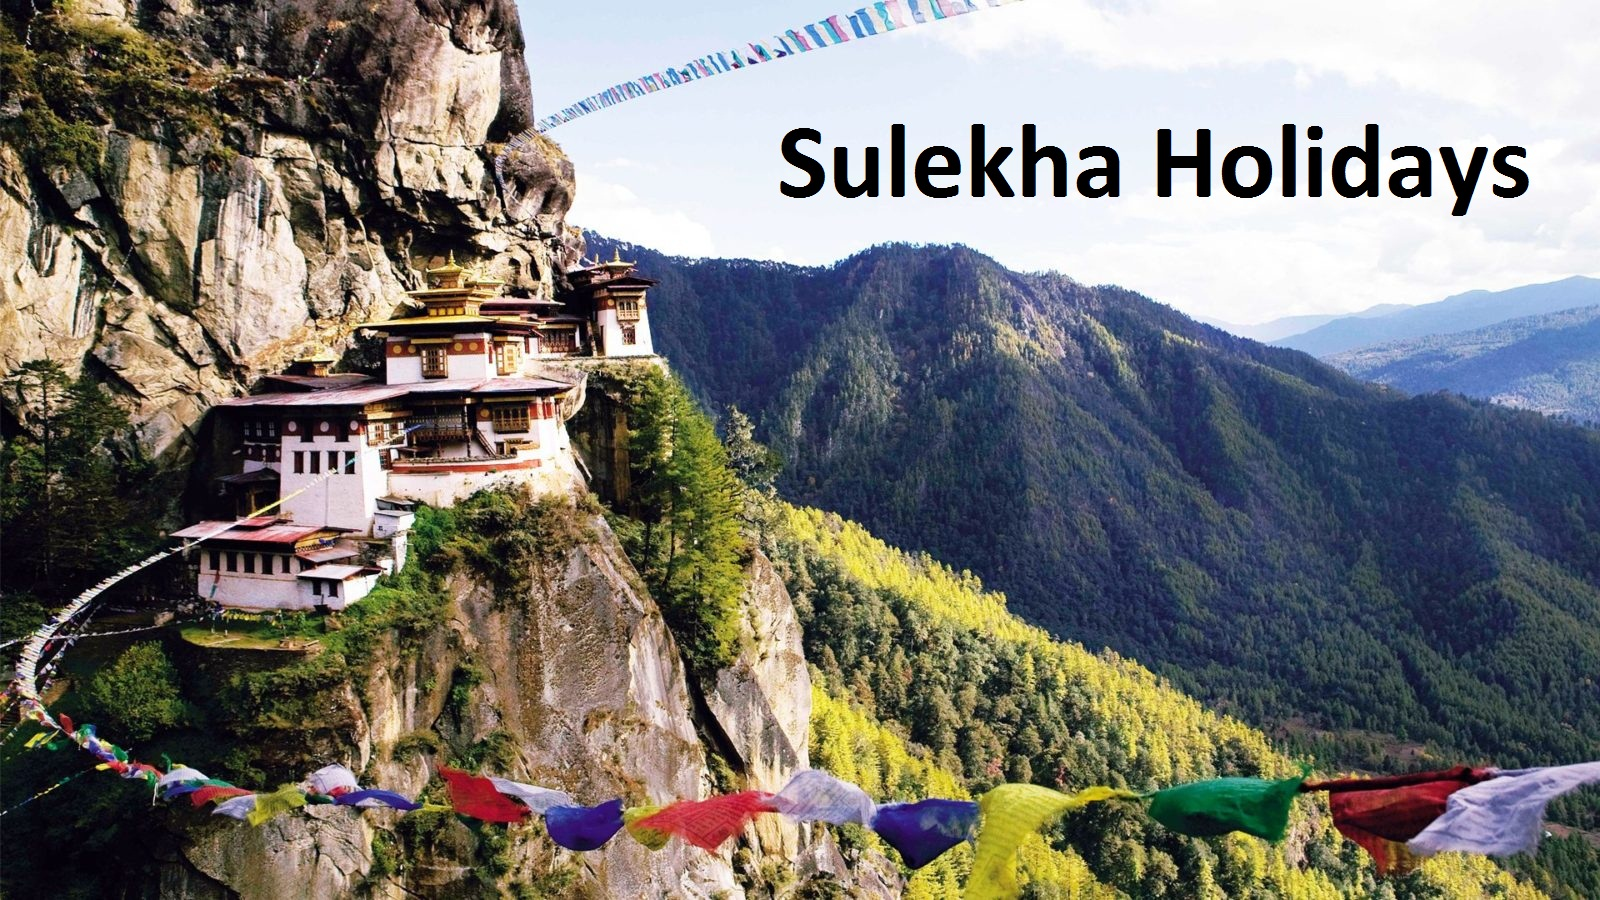 Sikkim - Land of Mystical Mountains